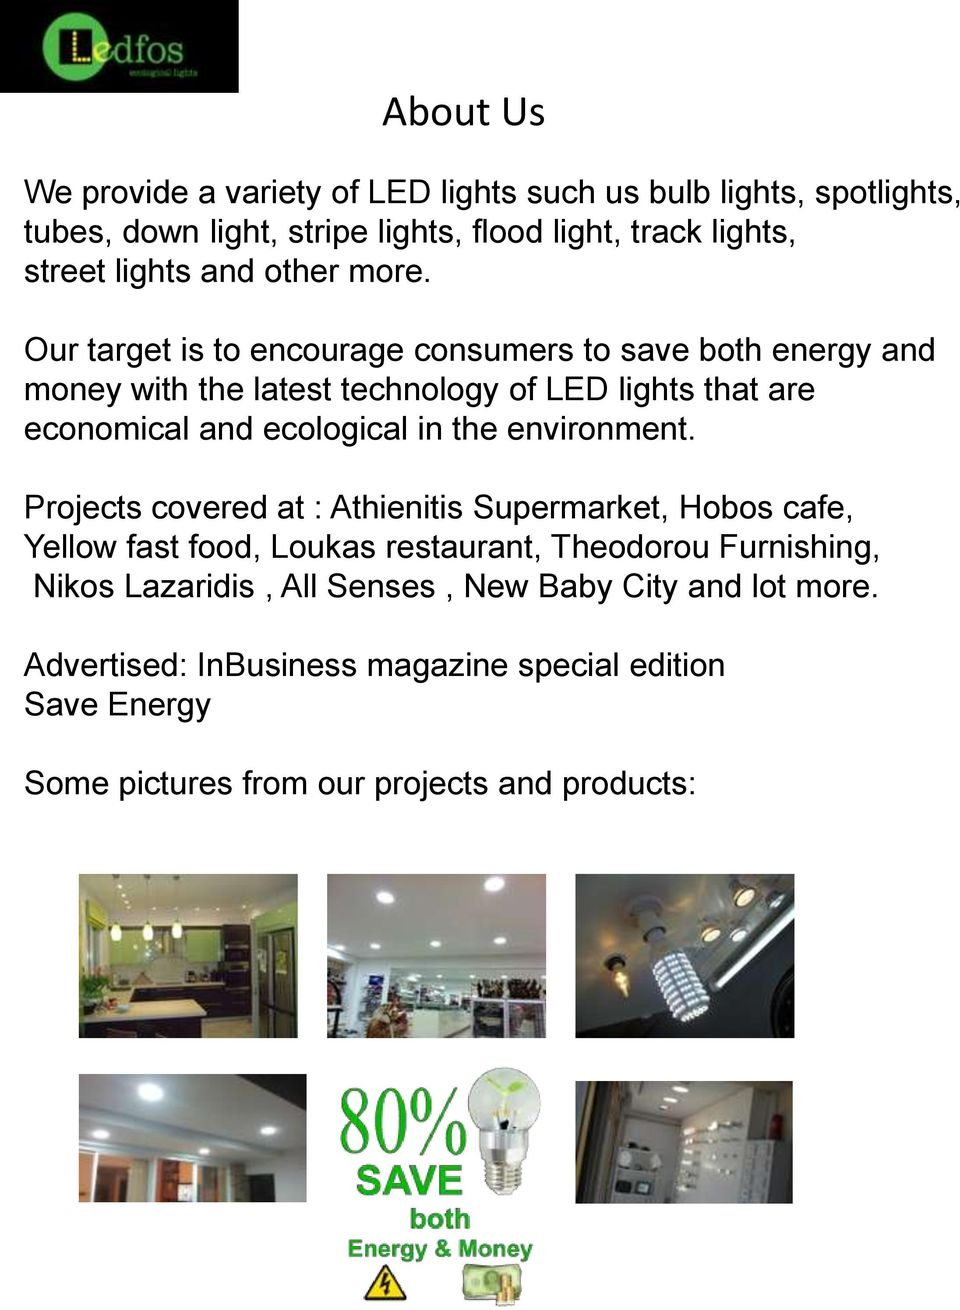 Our target is to encourage consumers to save both energy and money with the latest technology of LED lights that are economical and ecological in the